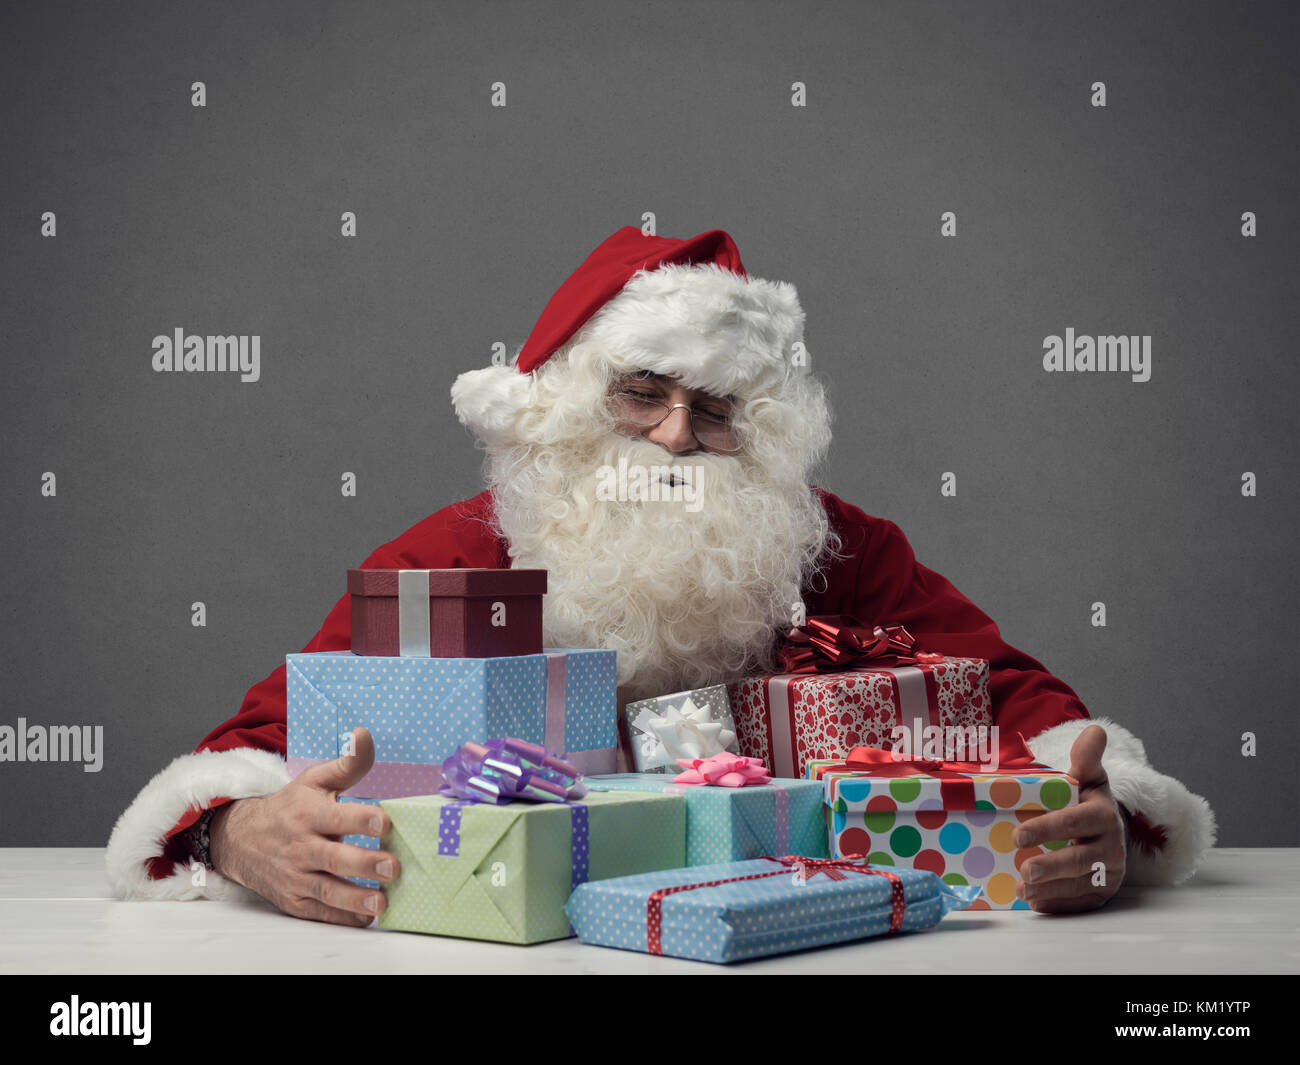 Happy serene Santa Claus holding gifts, Christmas and holidays concept - Stock Image